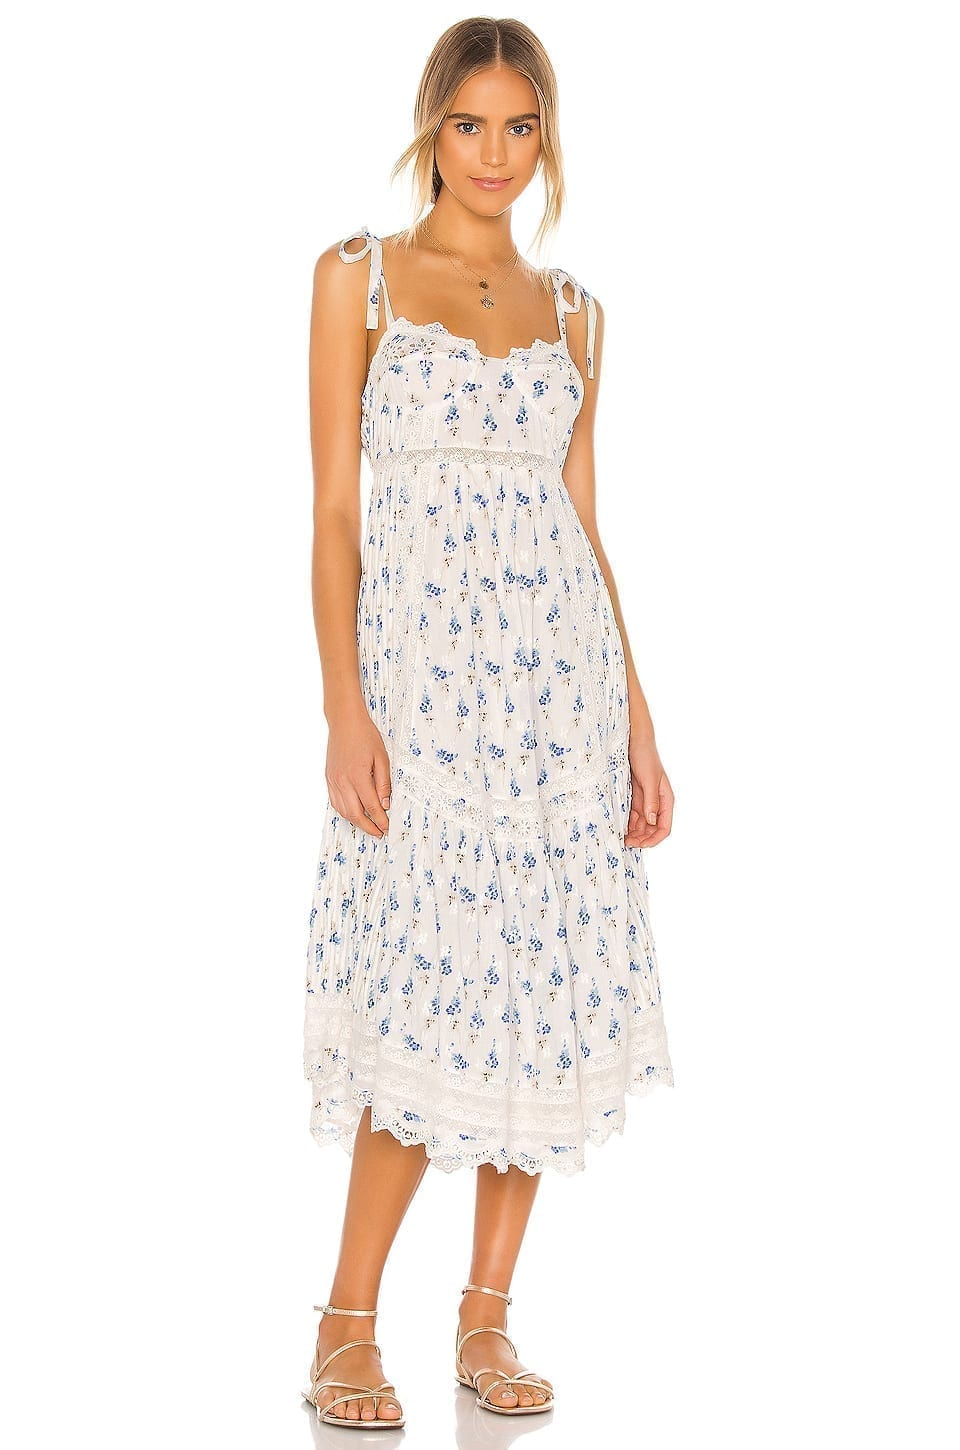 LOVESHACKFANCY Antonella Dress